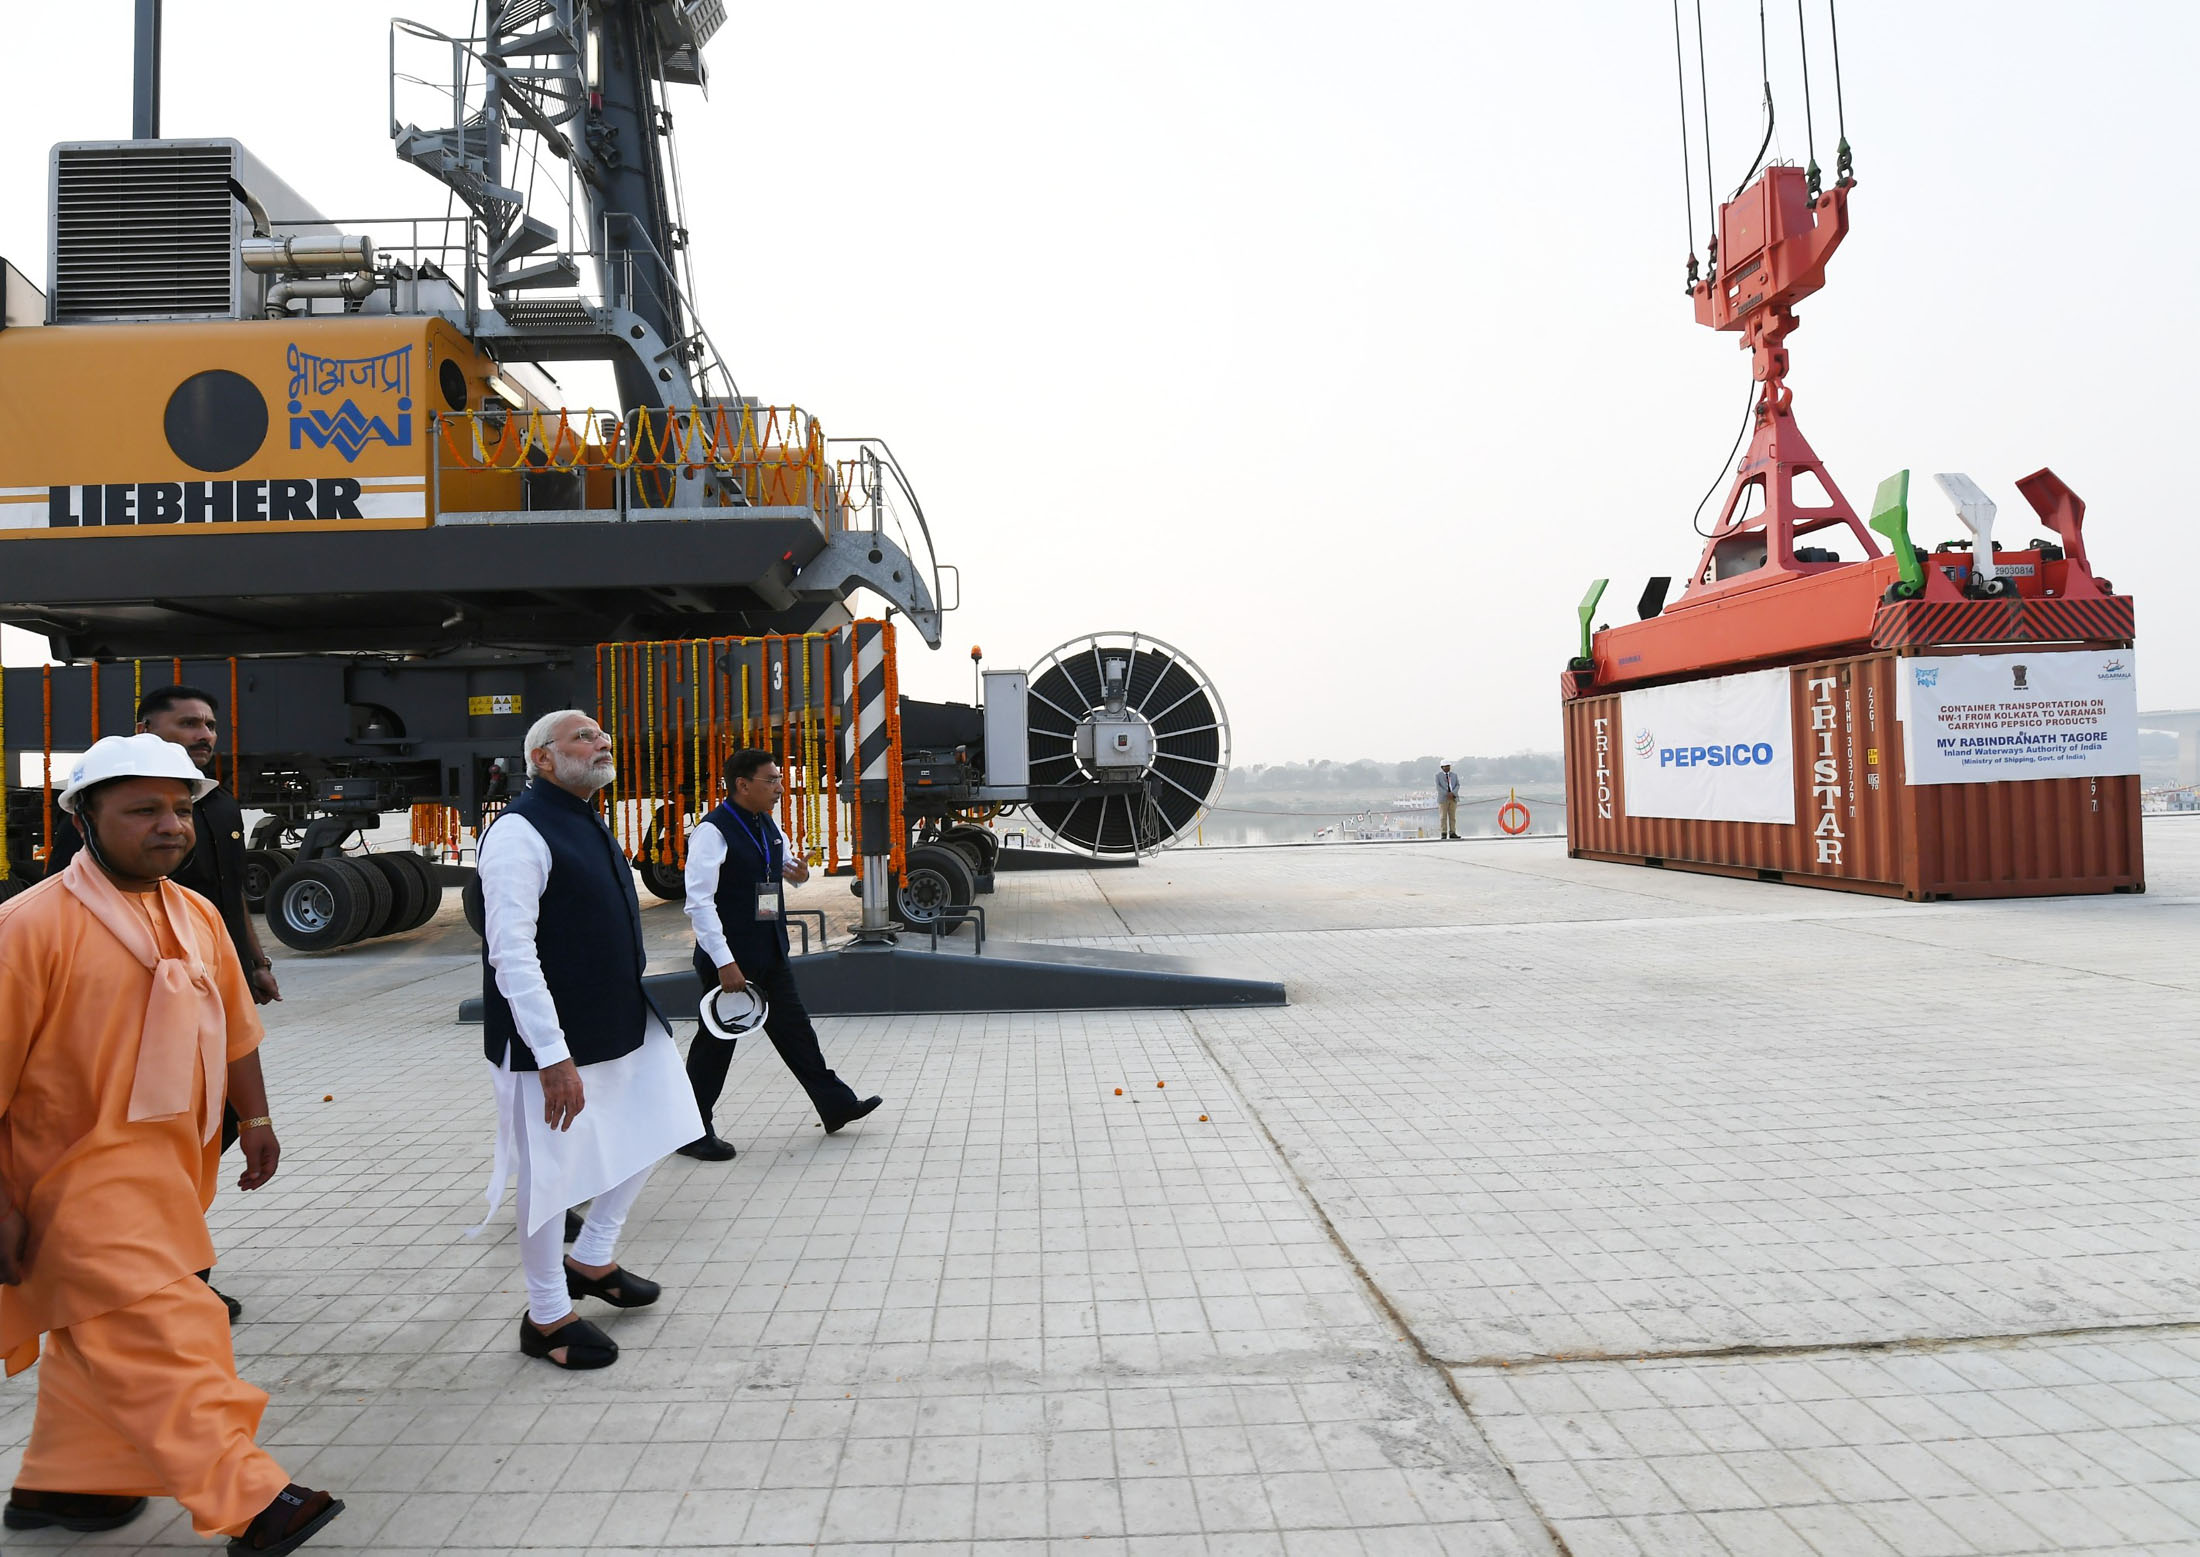 Prime Minister Narendra Modi dedicates the India's first Multi-Modal Terminal on river Ganga to the nation, in Varanasi, Uttar Pradesh on November 12. Chief Minister of Uttar Pradesh Yogi Adityanath are also seen. Photo courtesy: Press Information Bureau